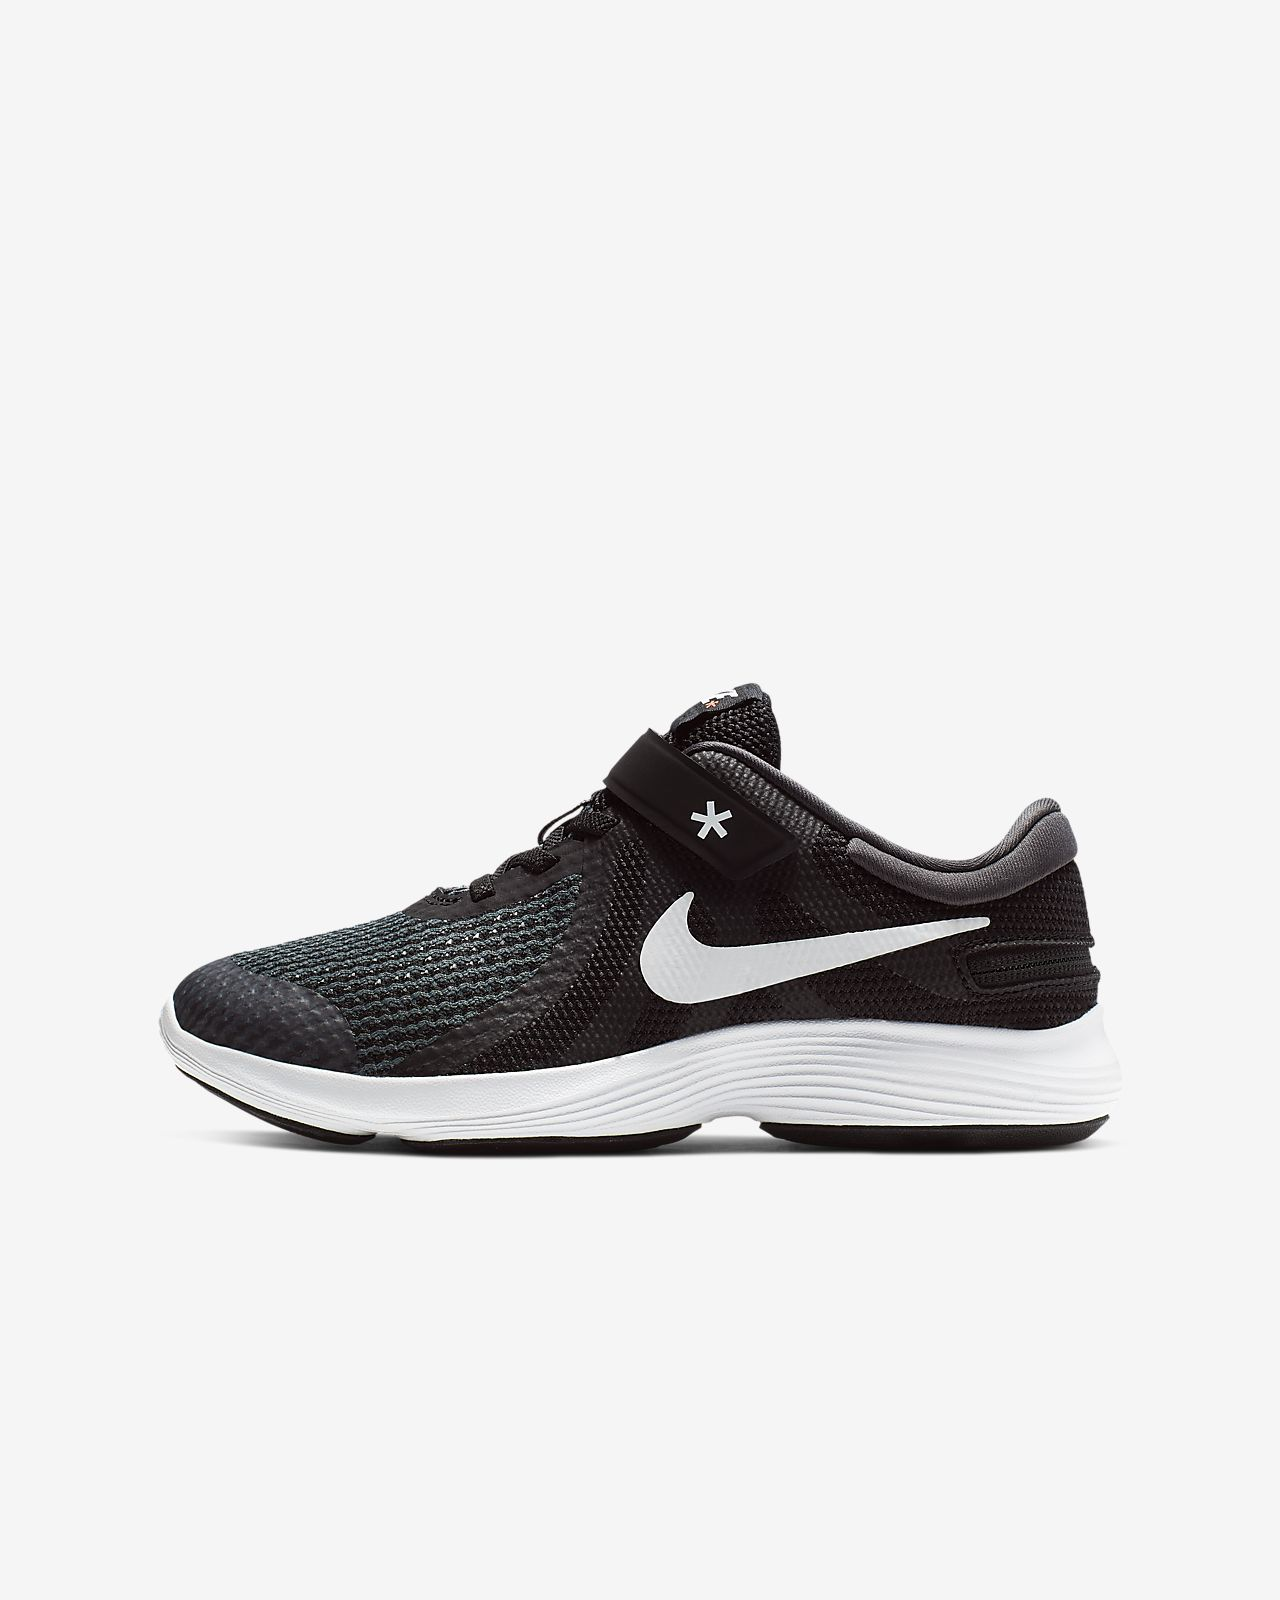 new style 587ca d97de ... Nike Revolution 4 Flyease 4E Big Kids  Running Shoe